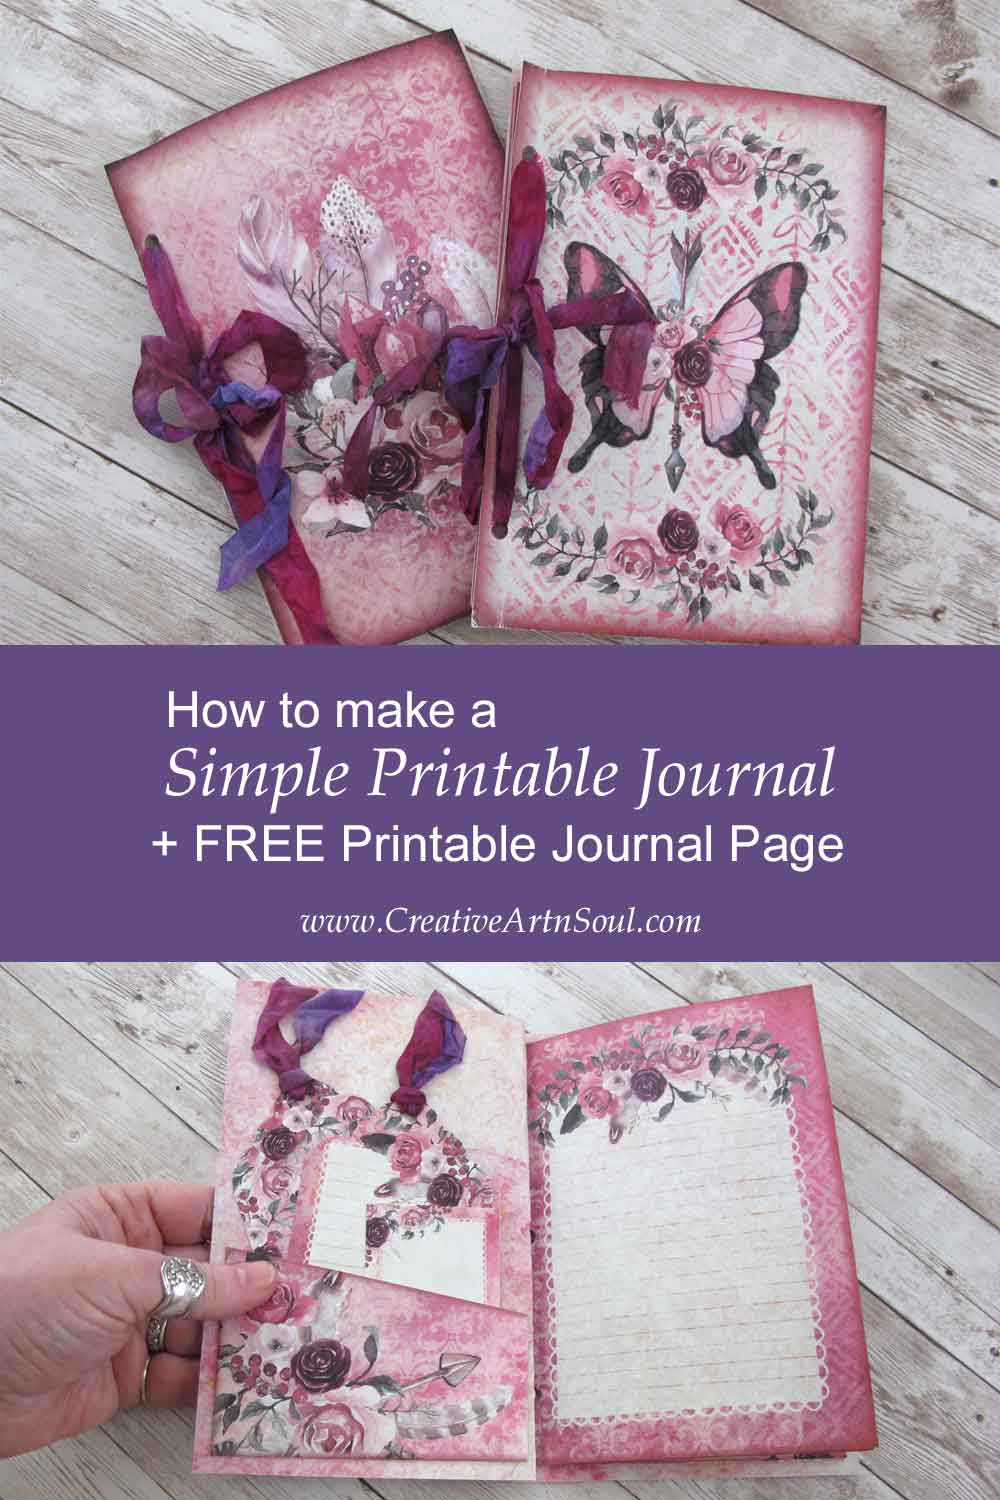 How to make a Simple Printable Writing Journal